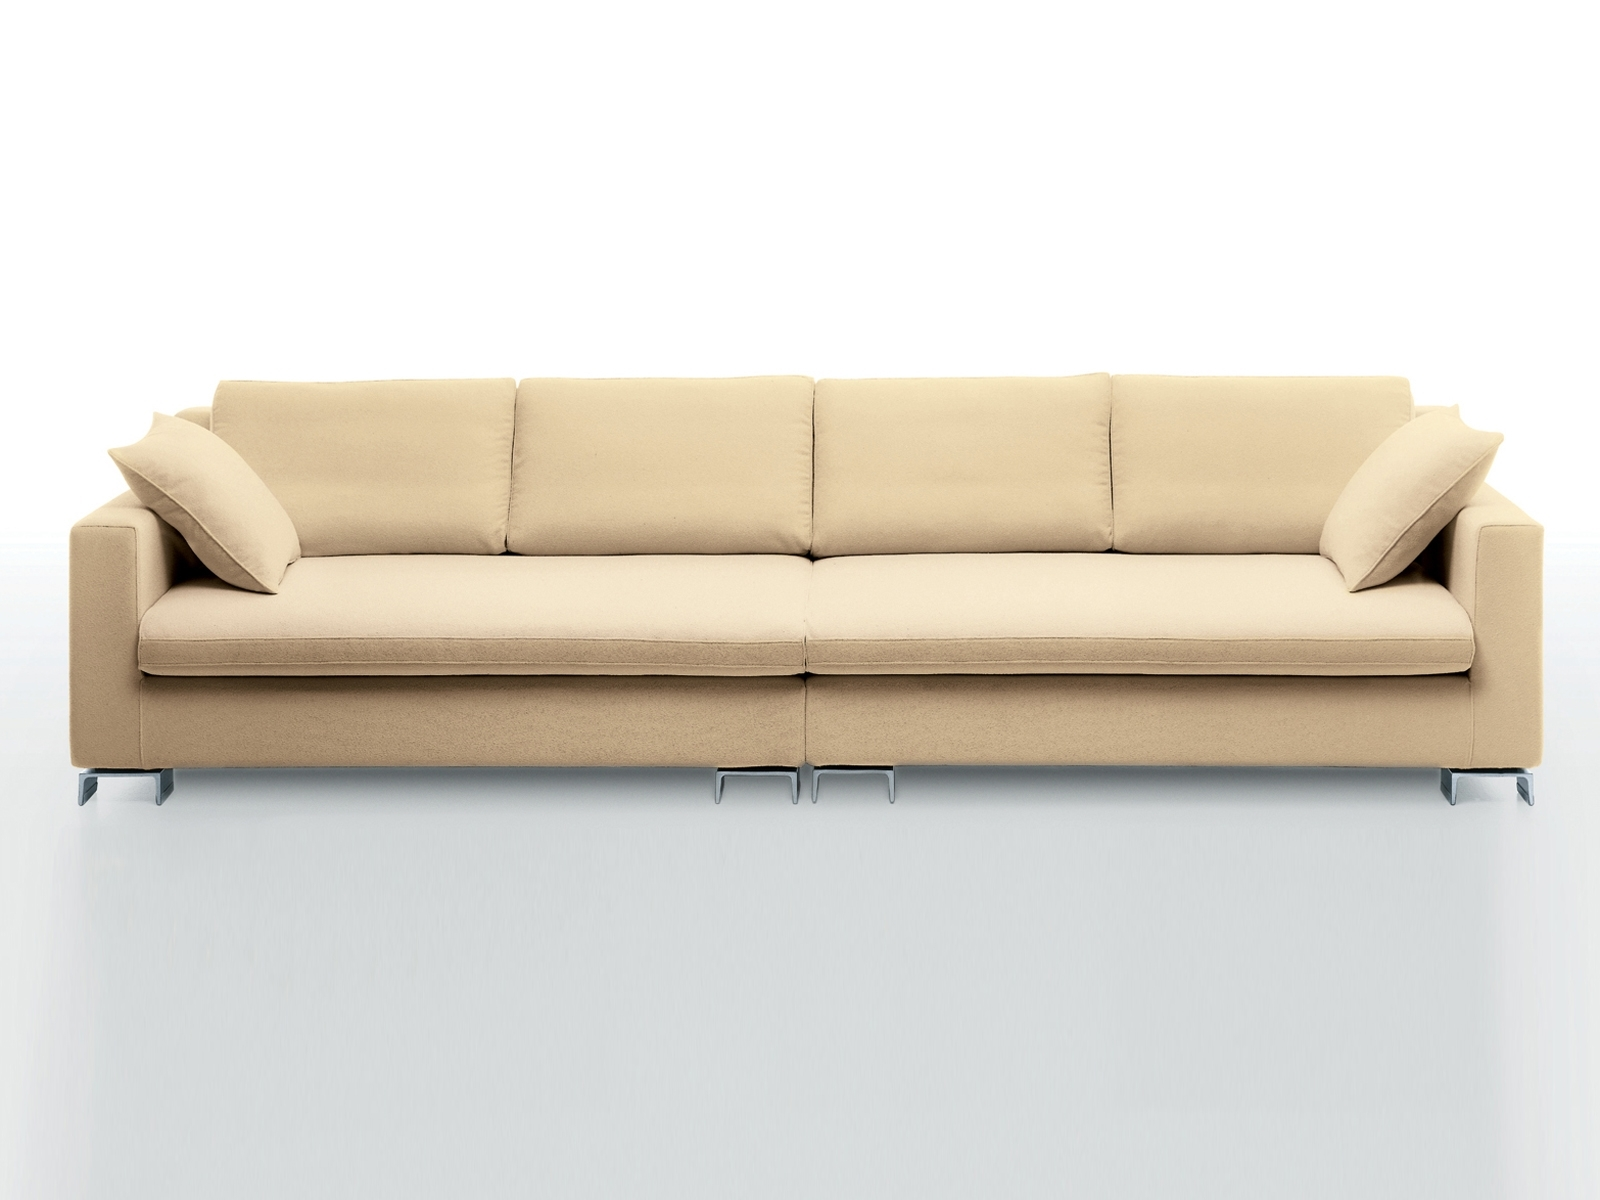 2018 4 Seater Sofa For Large And Trendy Living Room Within 4 Seater Sofas (View 1 of 20)